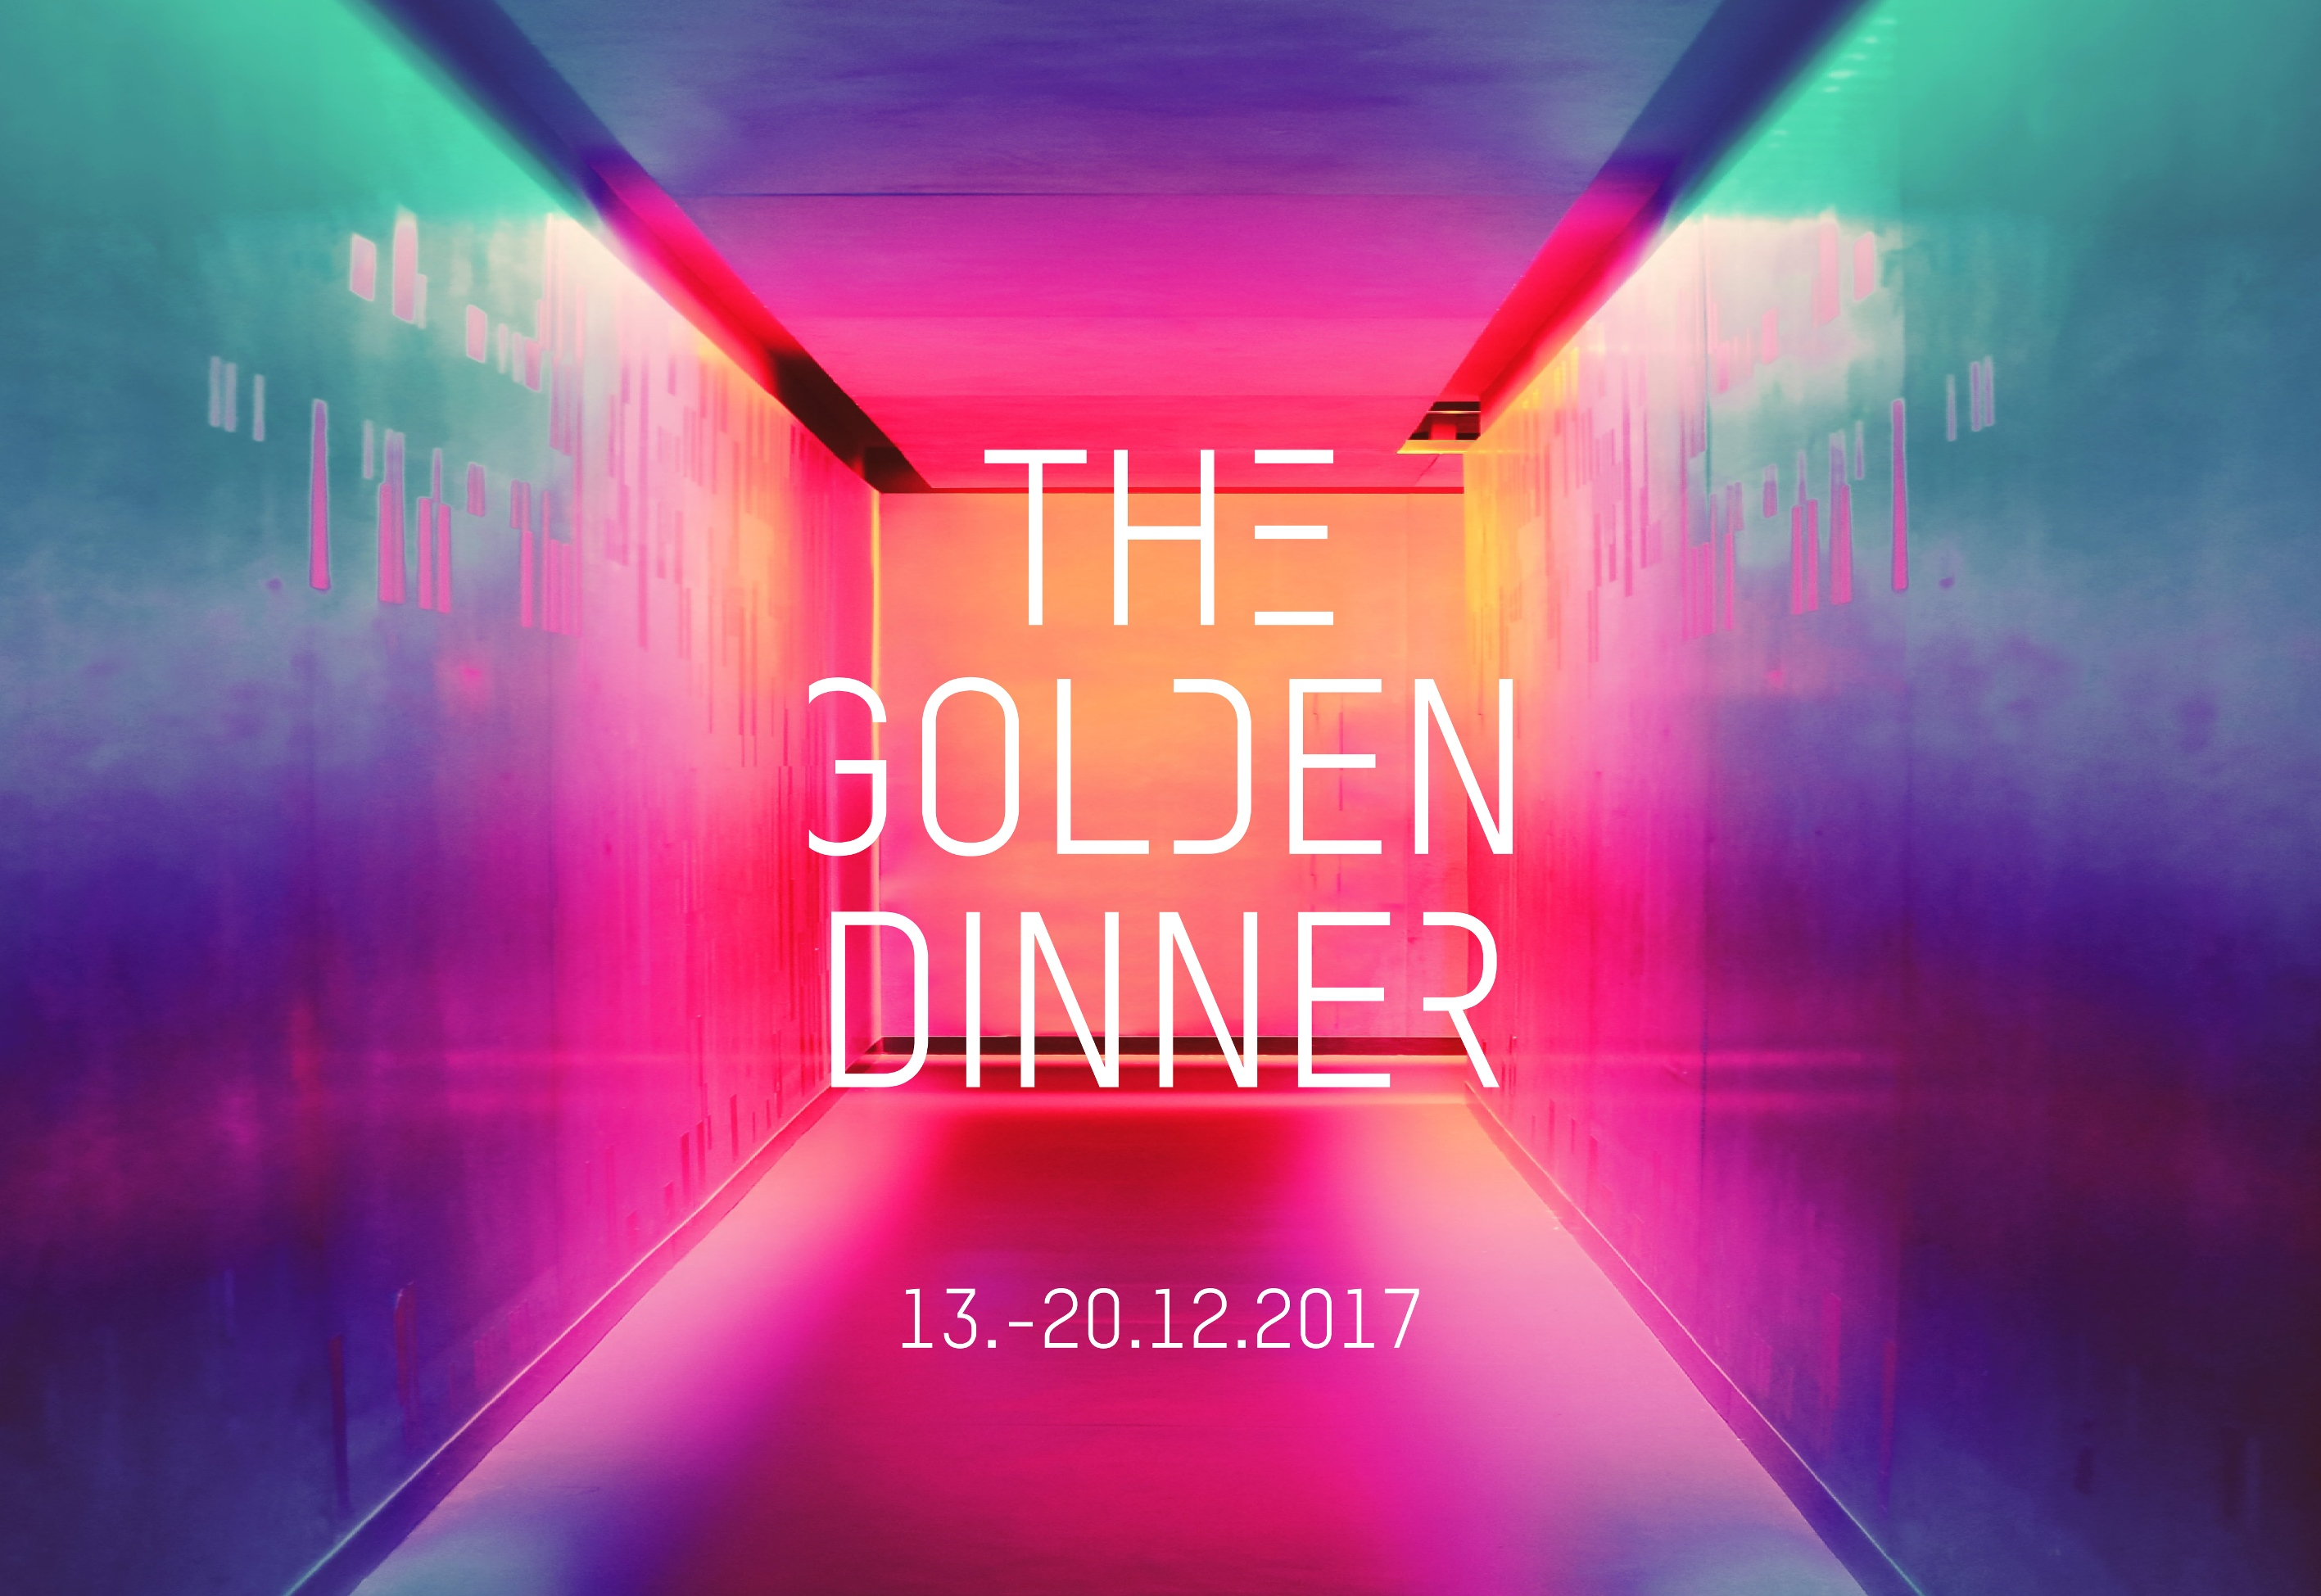 https://www.facebook.com/goldendinner